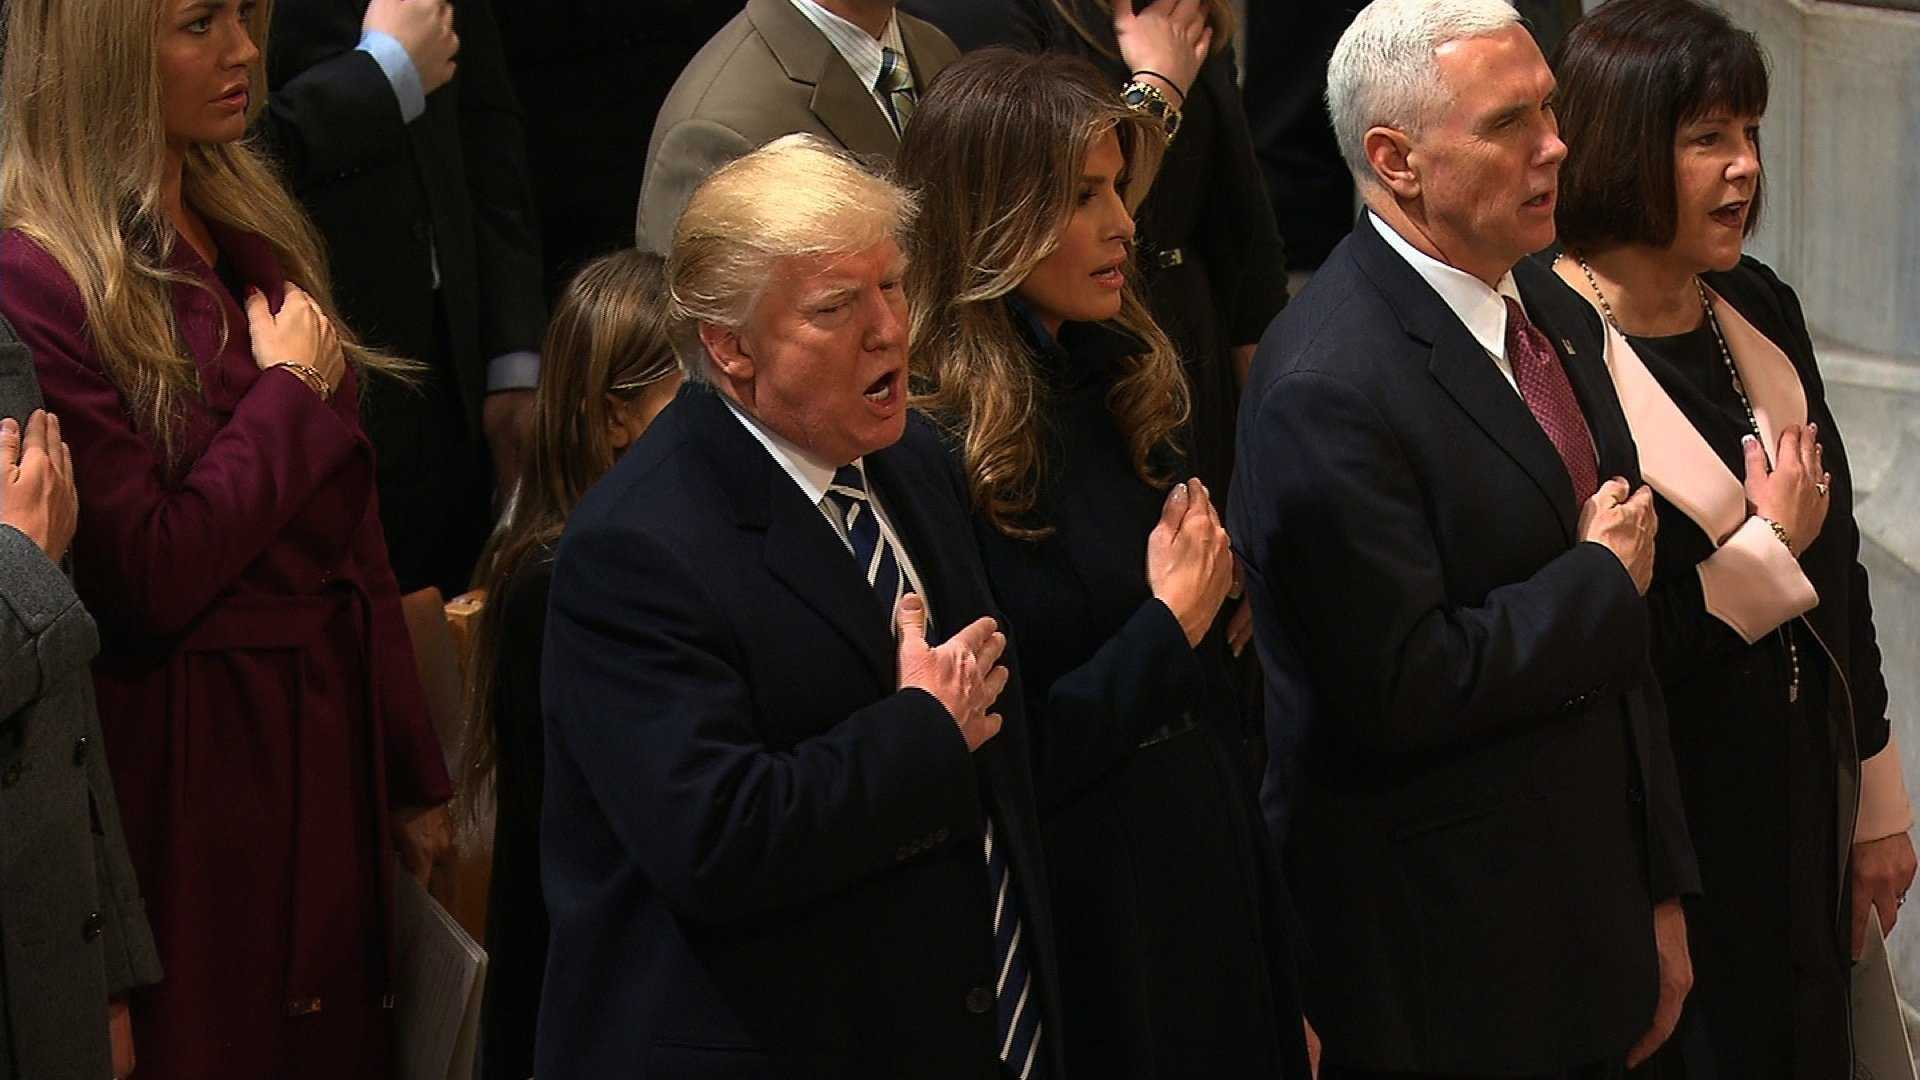 President Donald Trump at the National Cathedral for the 58th Presidential Inaugural Prayer Service on Jan. 21, 2017.